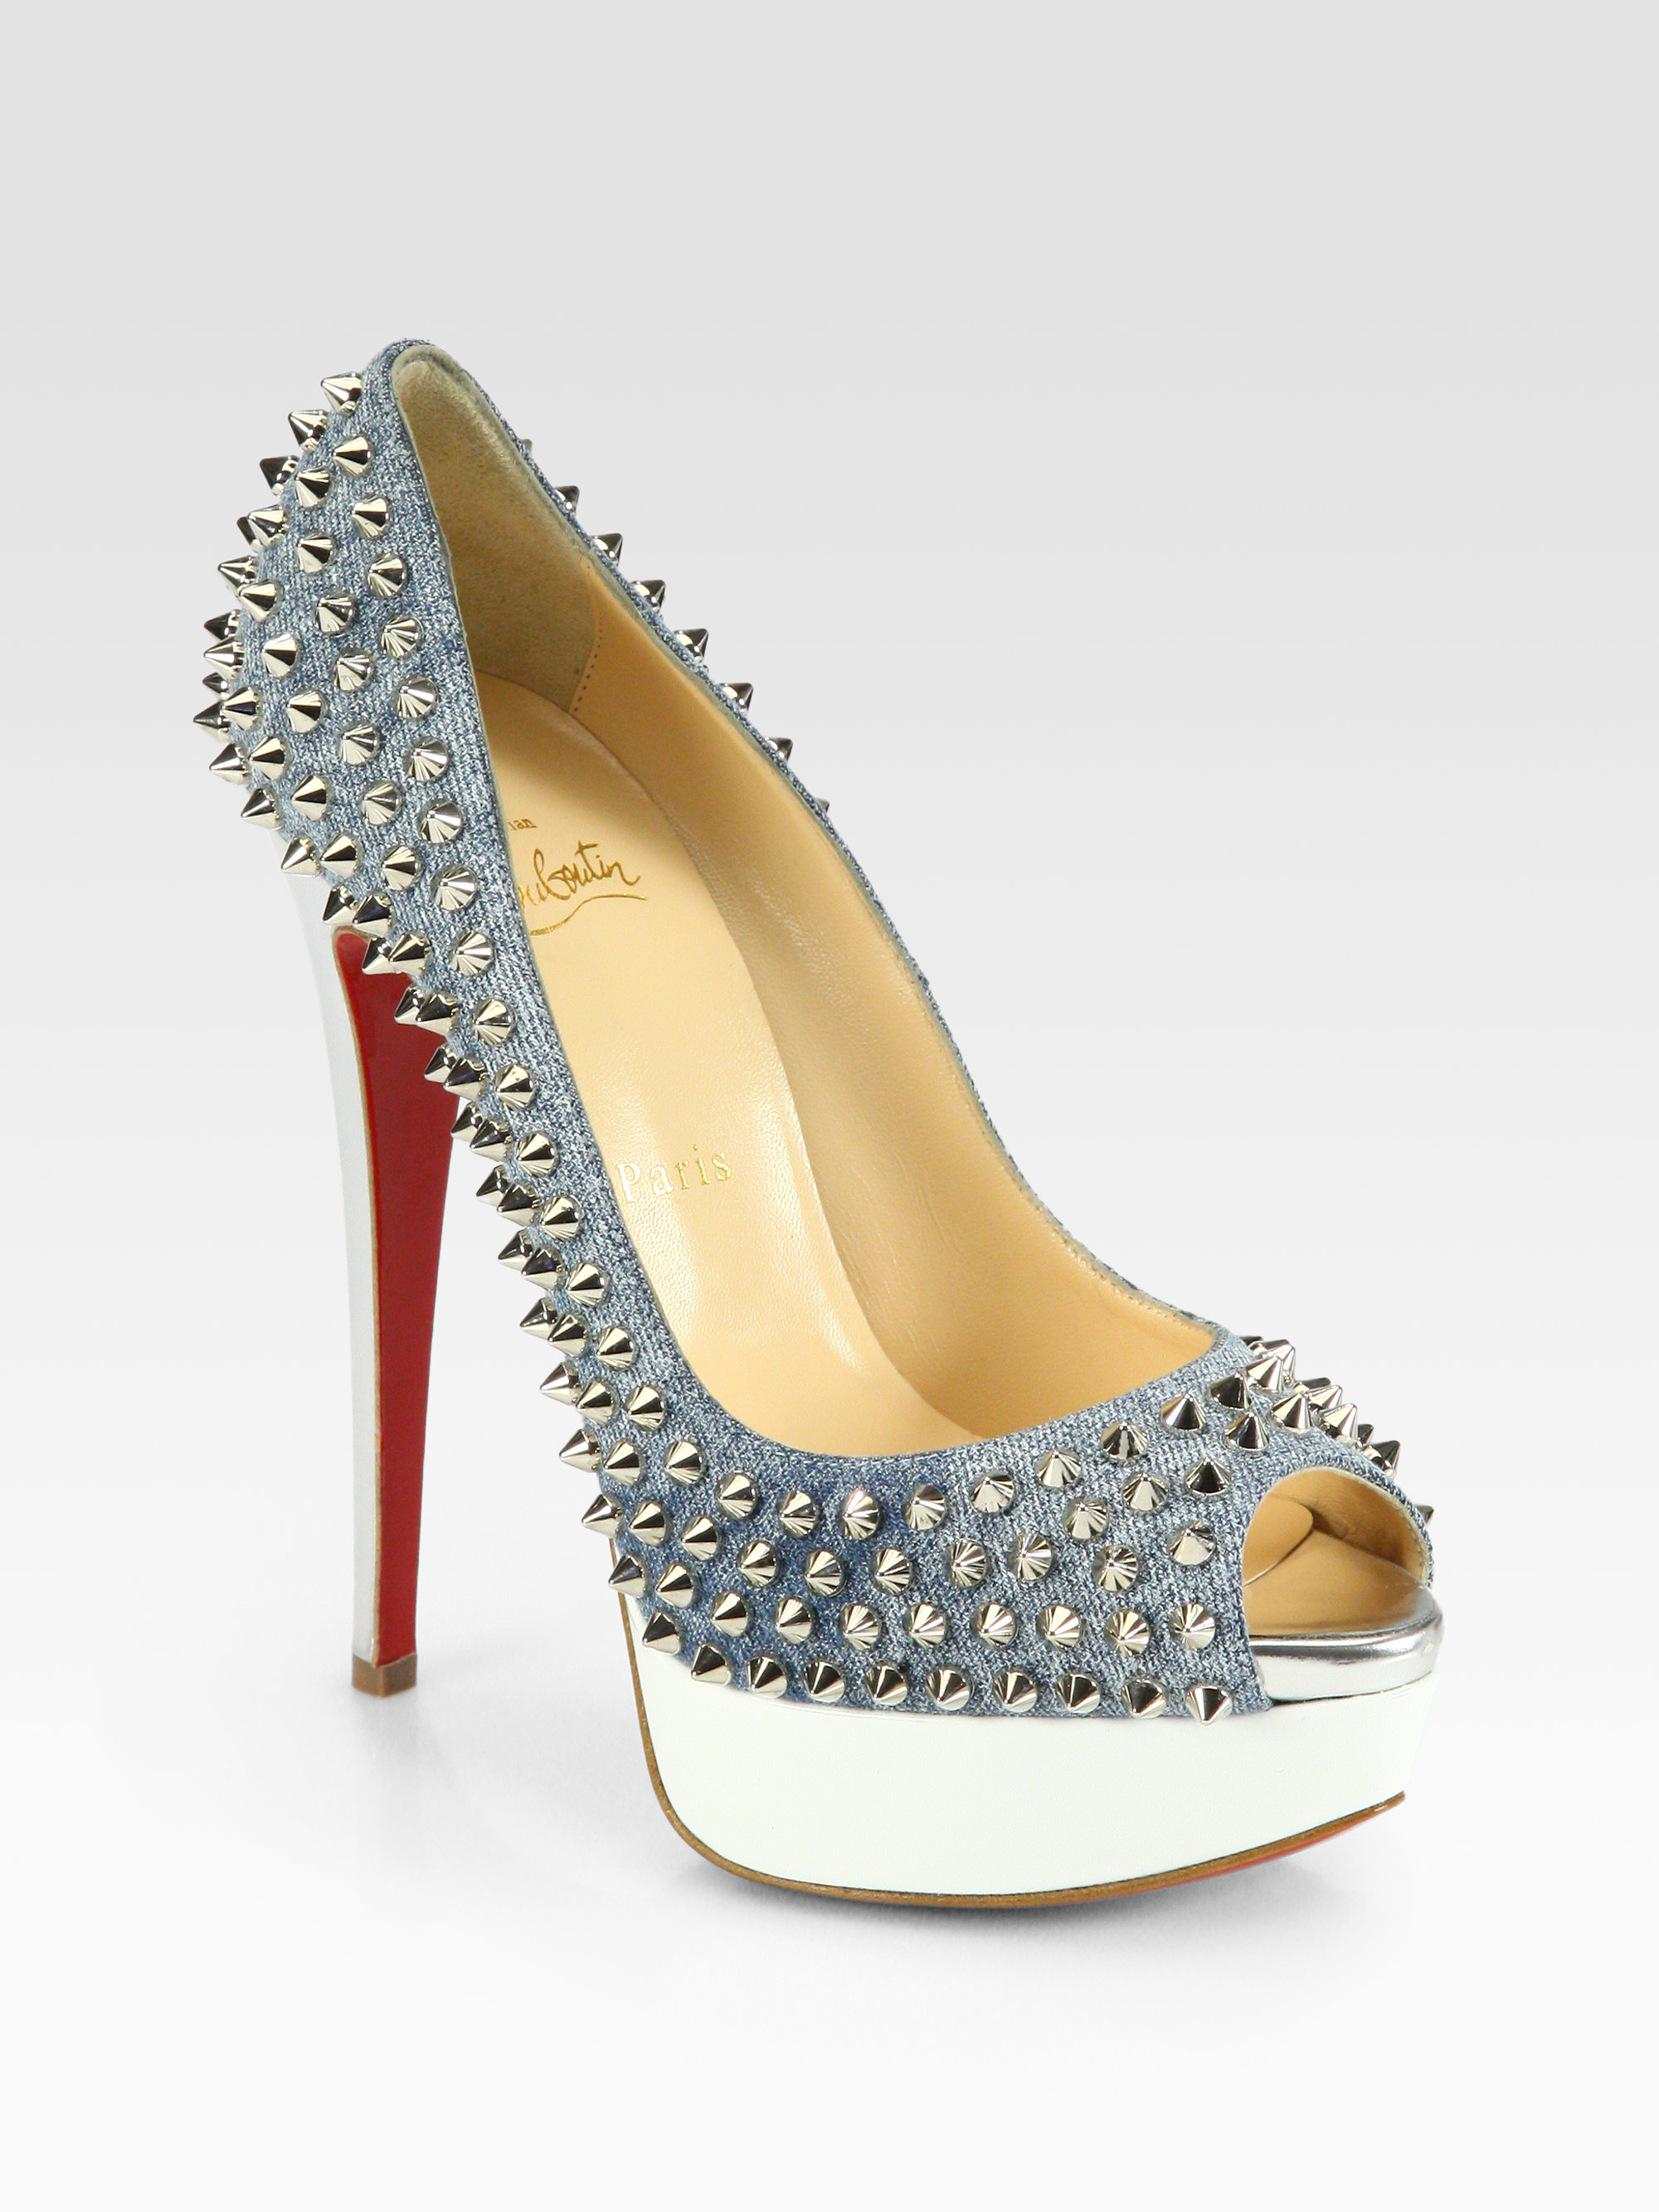 new product 5f0b0 26d31 Christian Louboutin Blue Lady Spiked Denim Platform Pumps